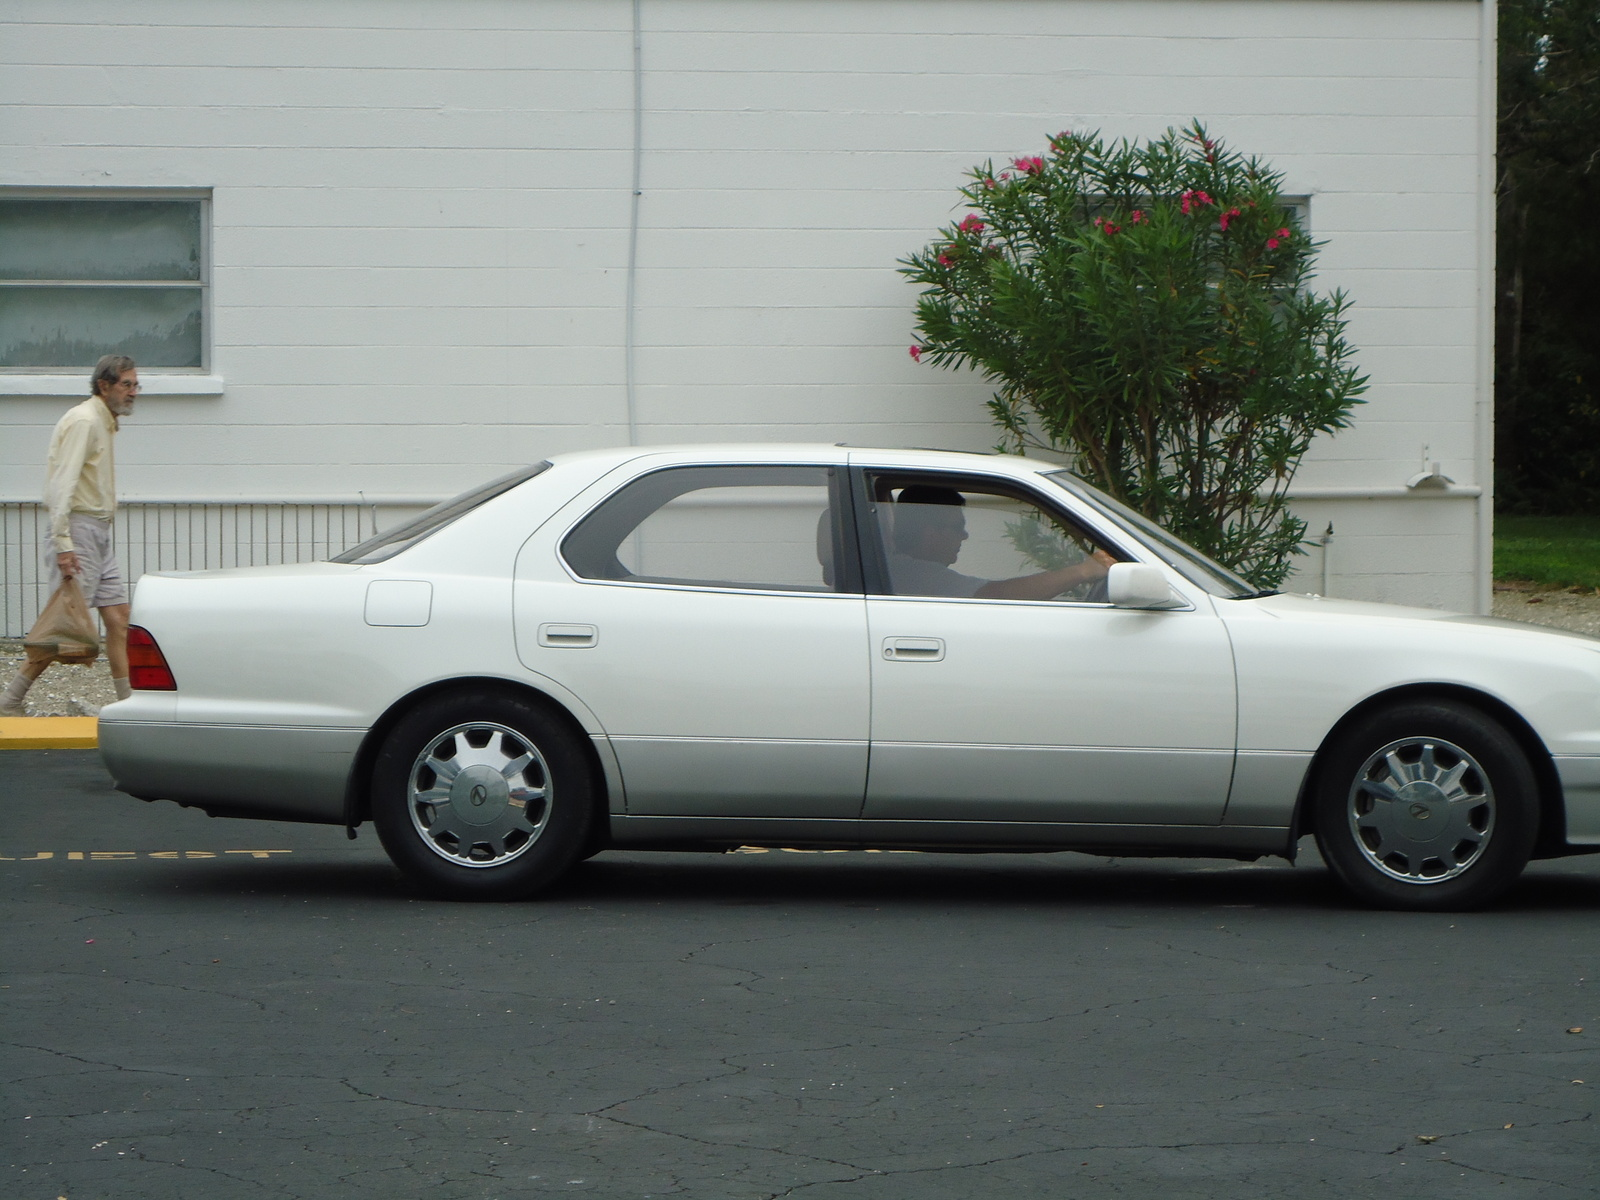 Picture of 1996 Lexus LS 400 Base